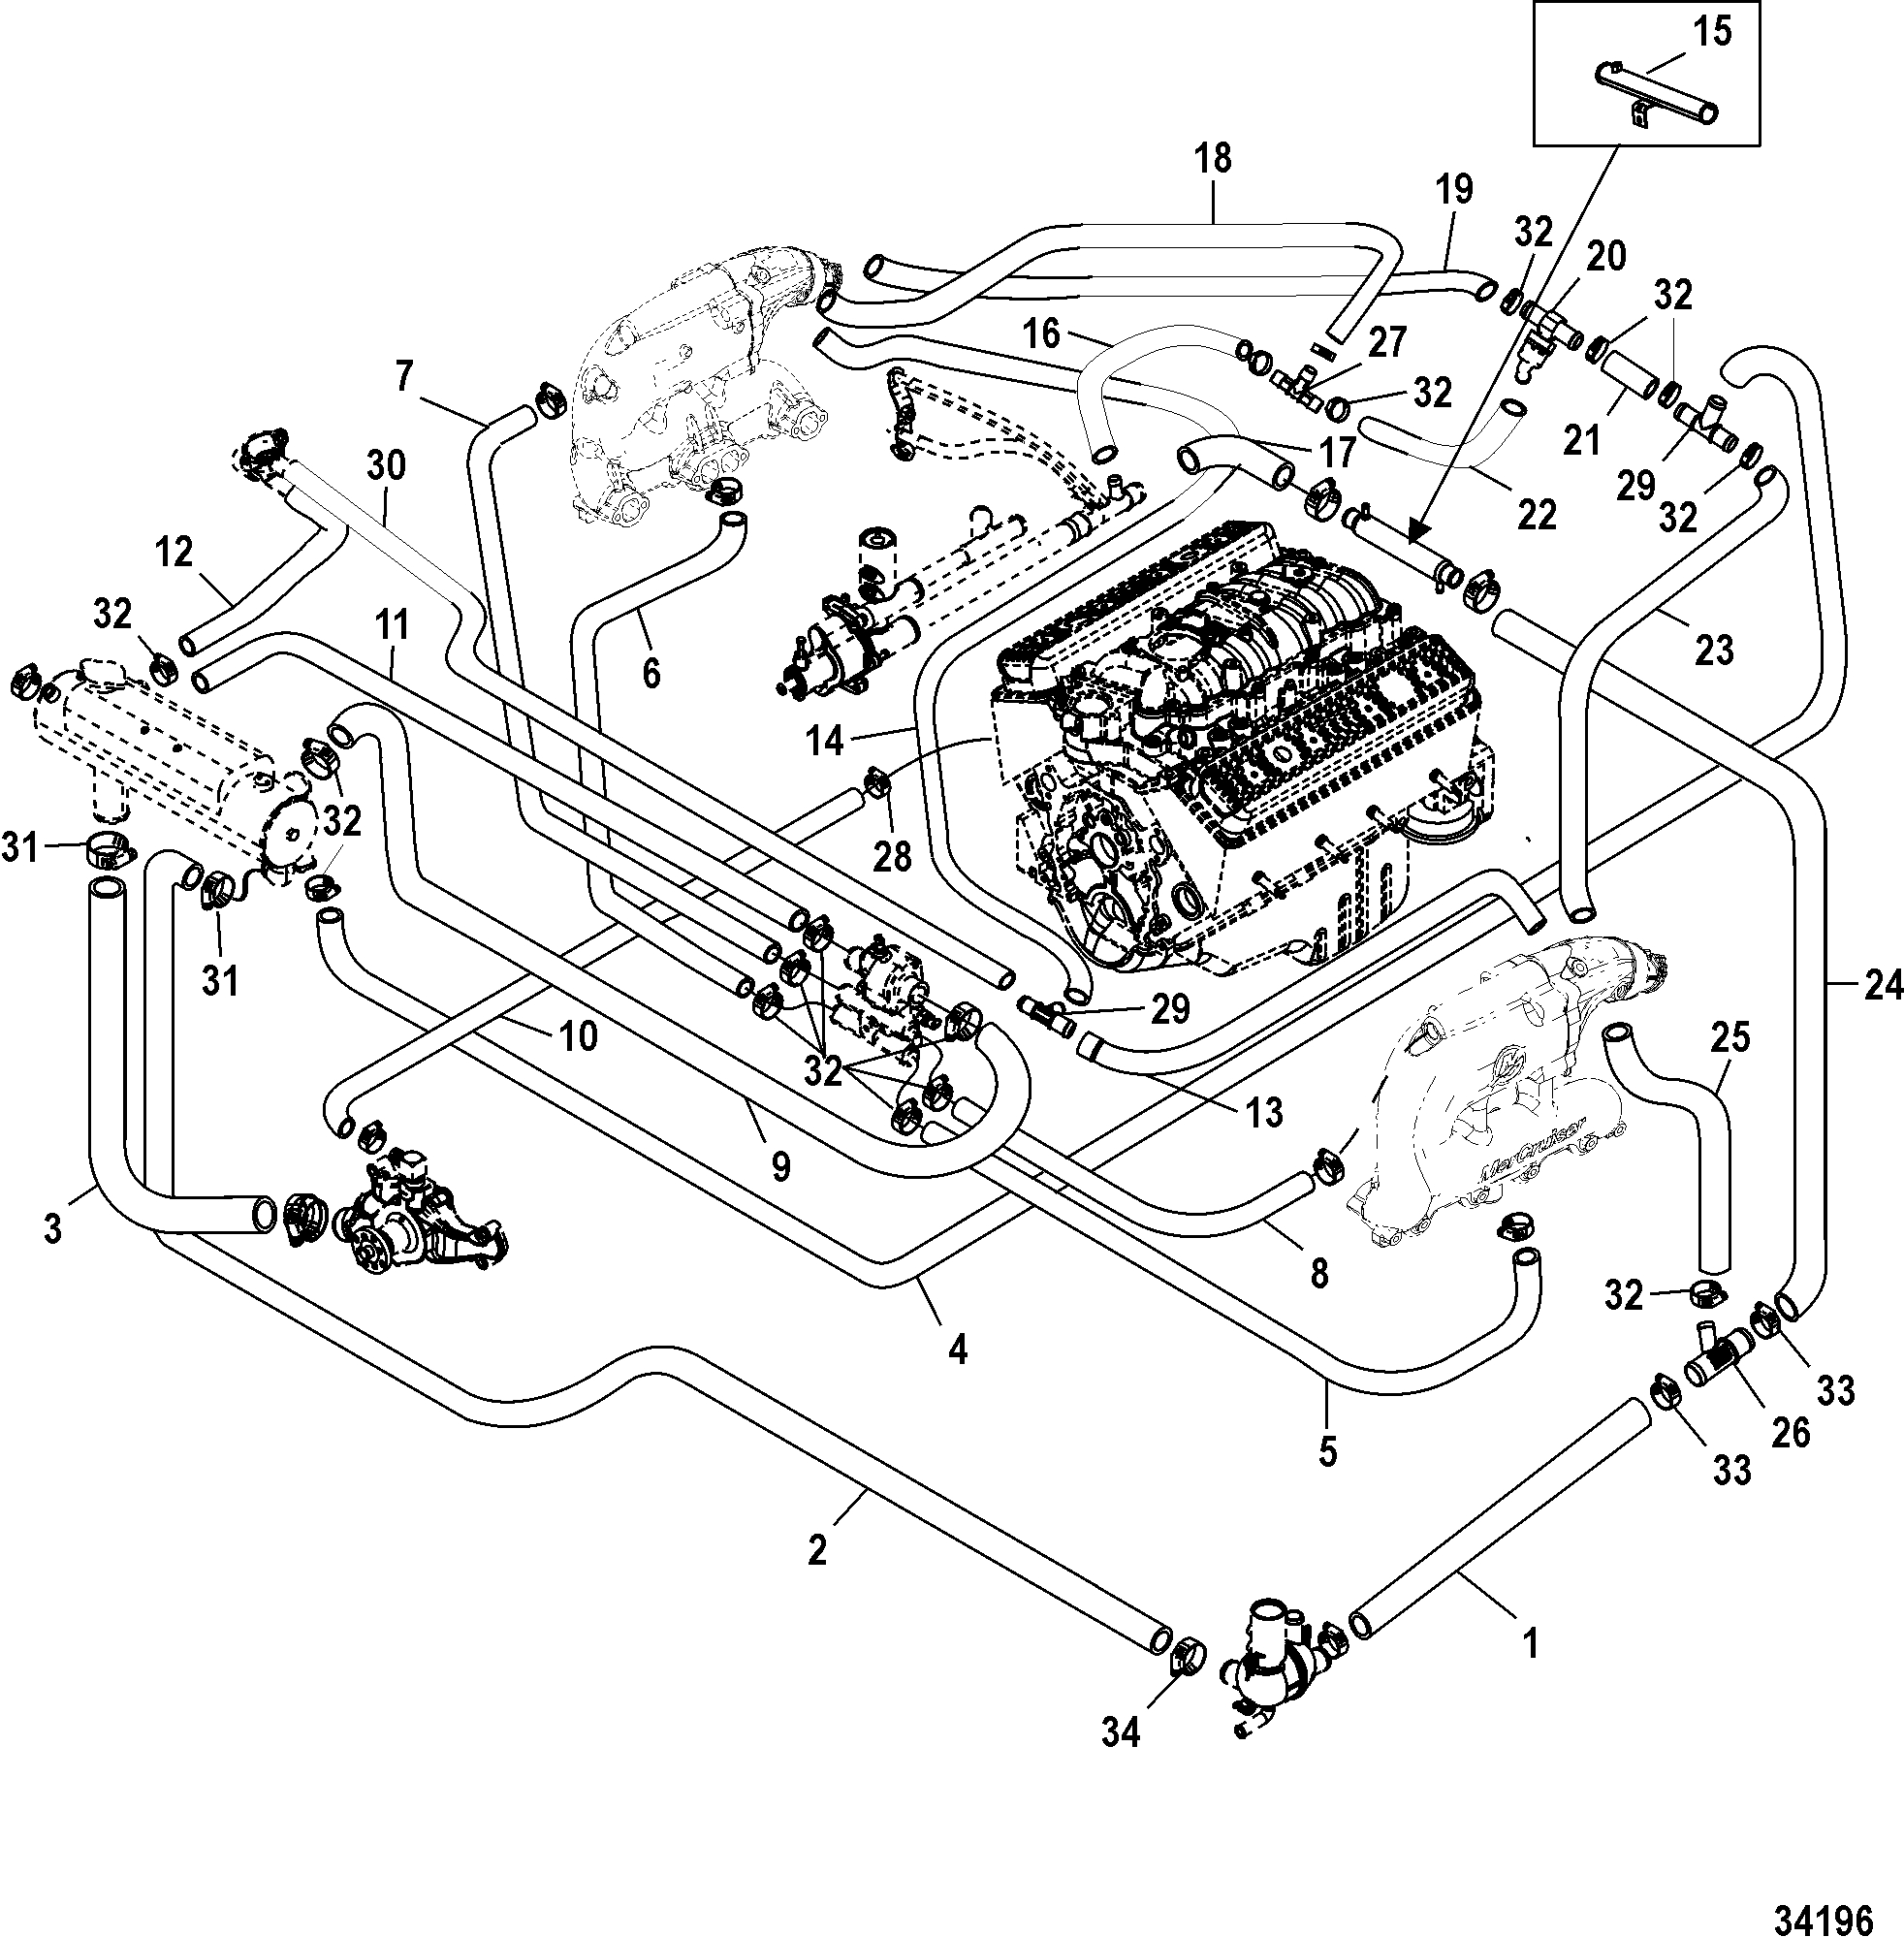 [DIAGRAM] 1974 Mercruiser Wiring Diagram FULL Version HD